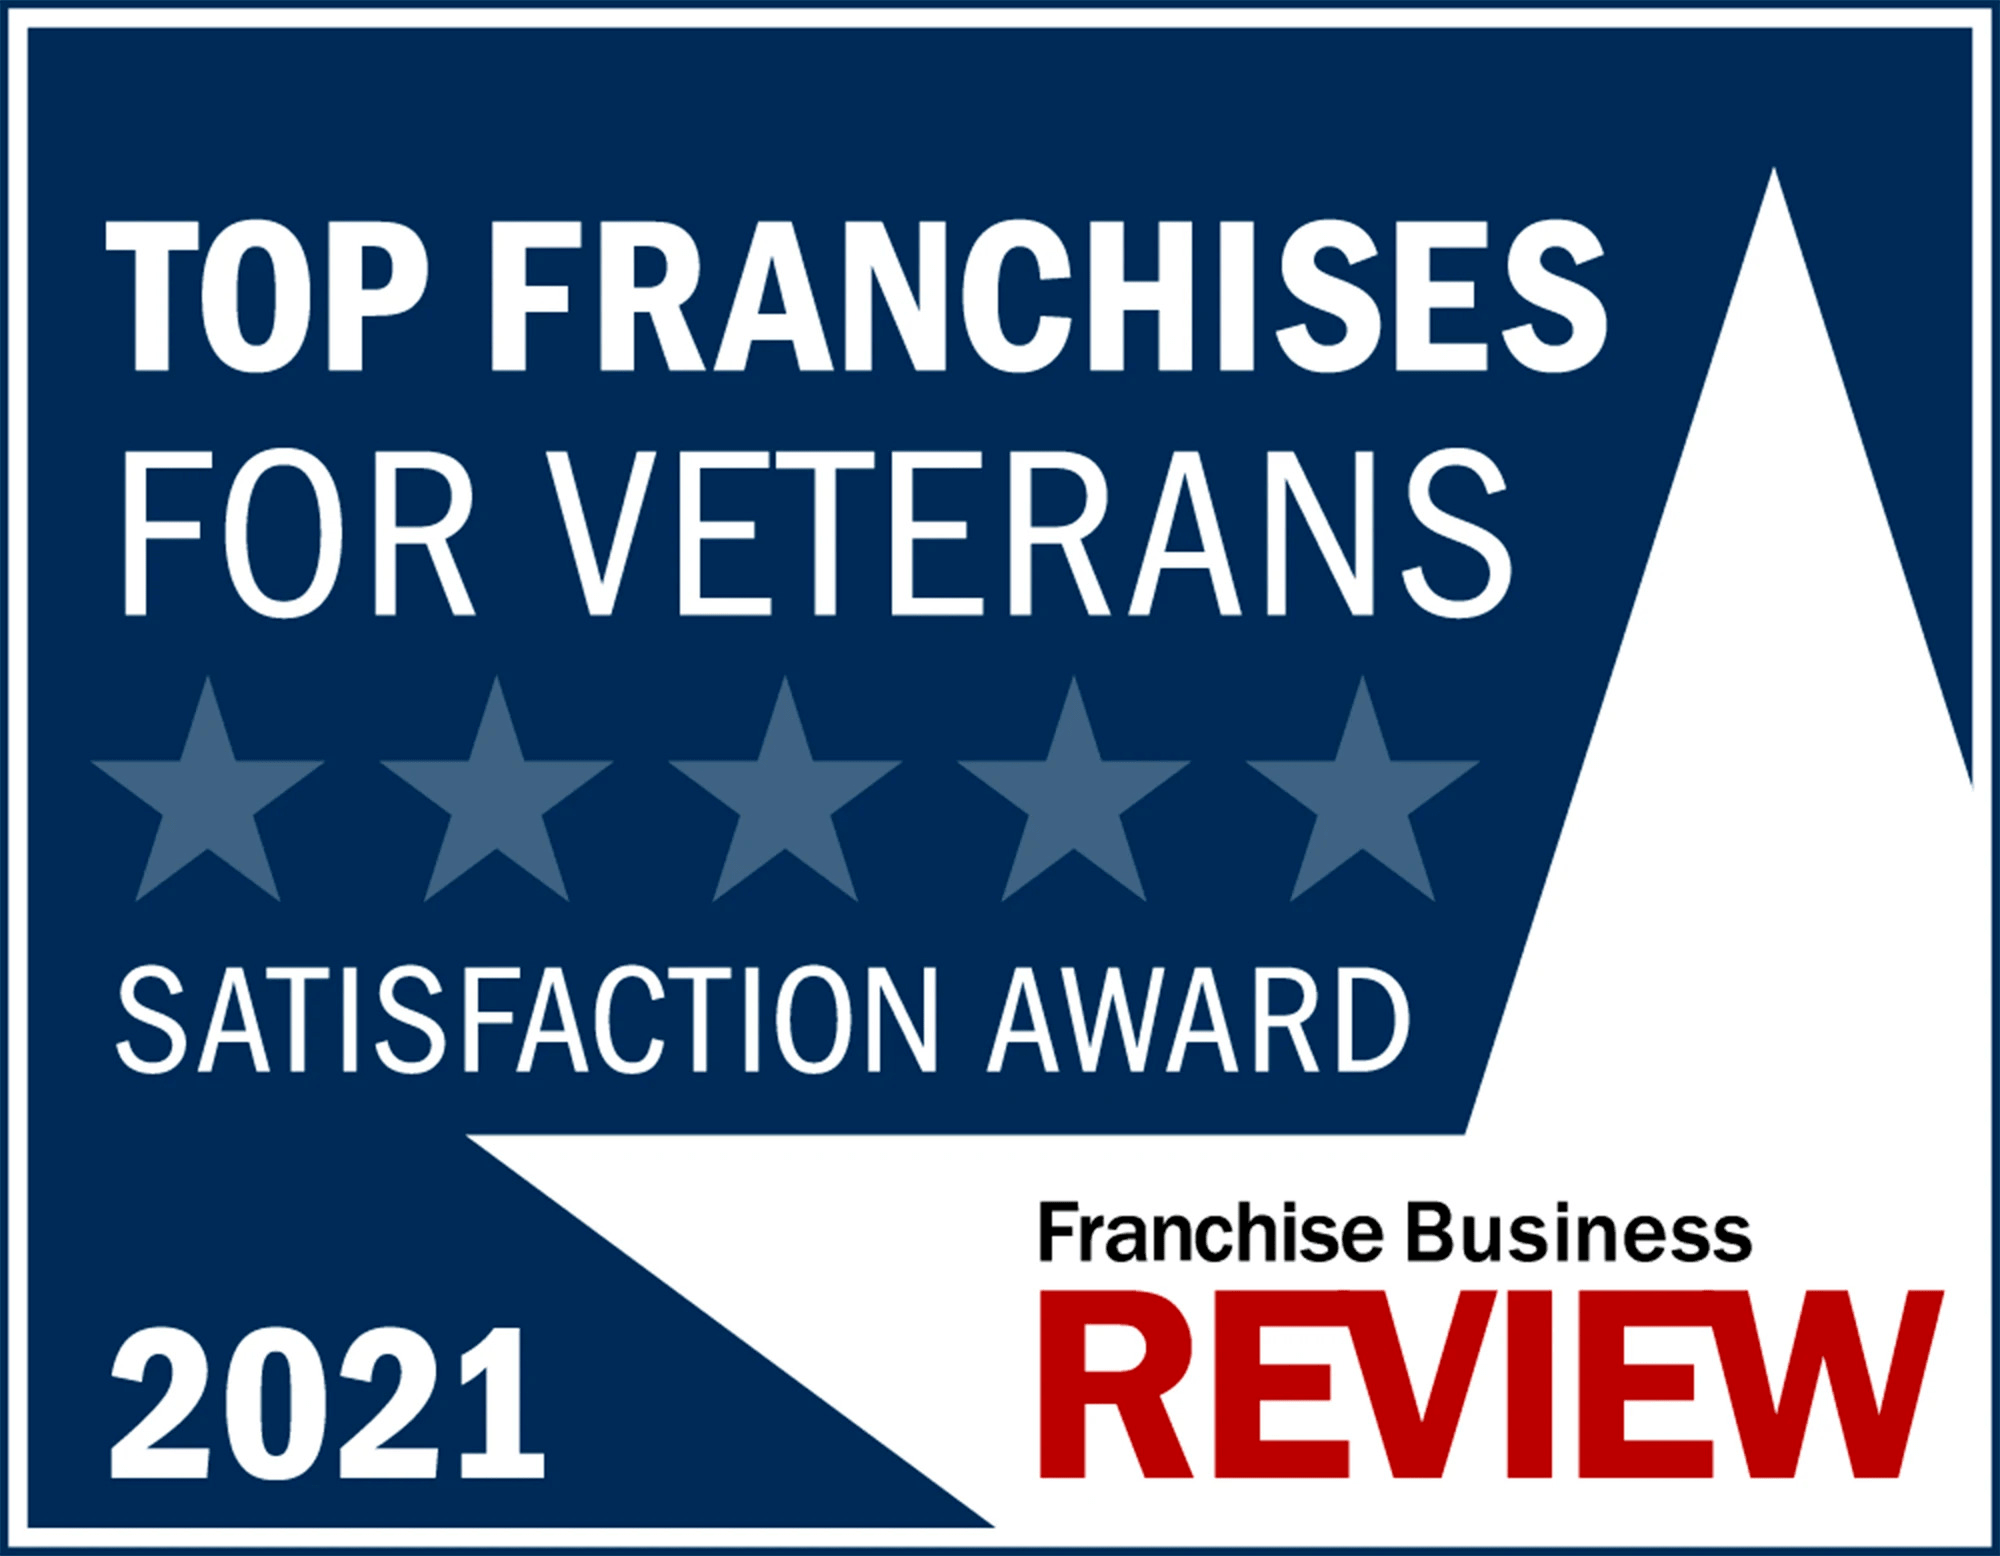 Top Franchises for Veterans Satisfaction Award 2020